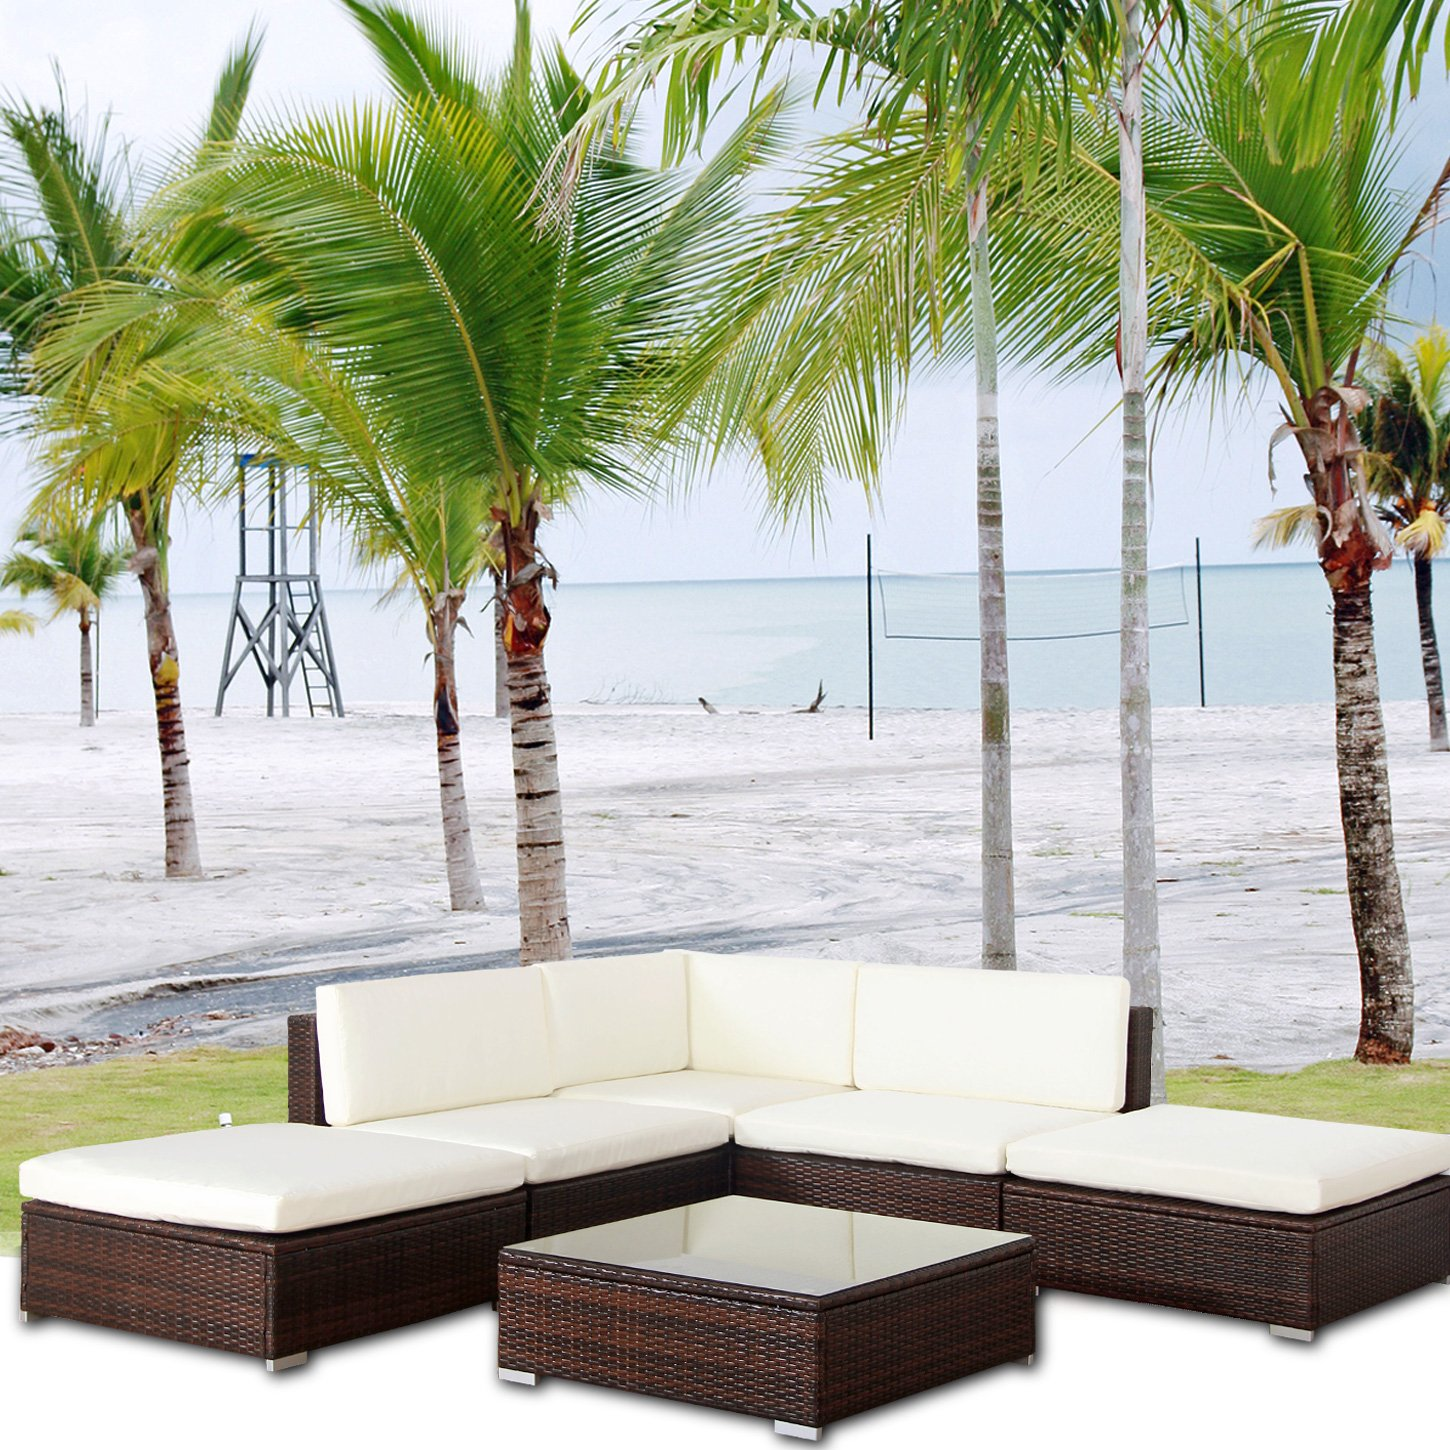 malibu poly rattan lounge braun aluminium sofa garnitur polyrattan gartenm bel g nstig kaufen. Black Bedroom Furniture Sets. Home Design Ideas